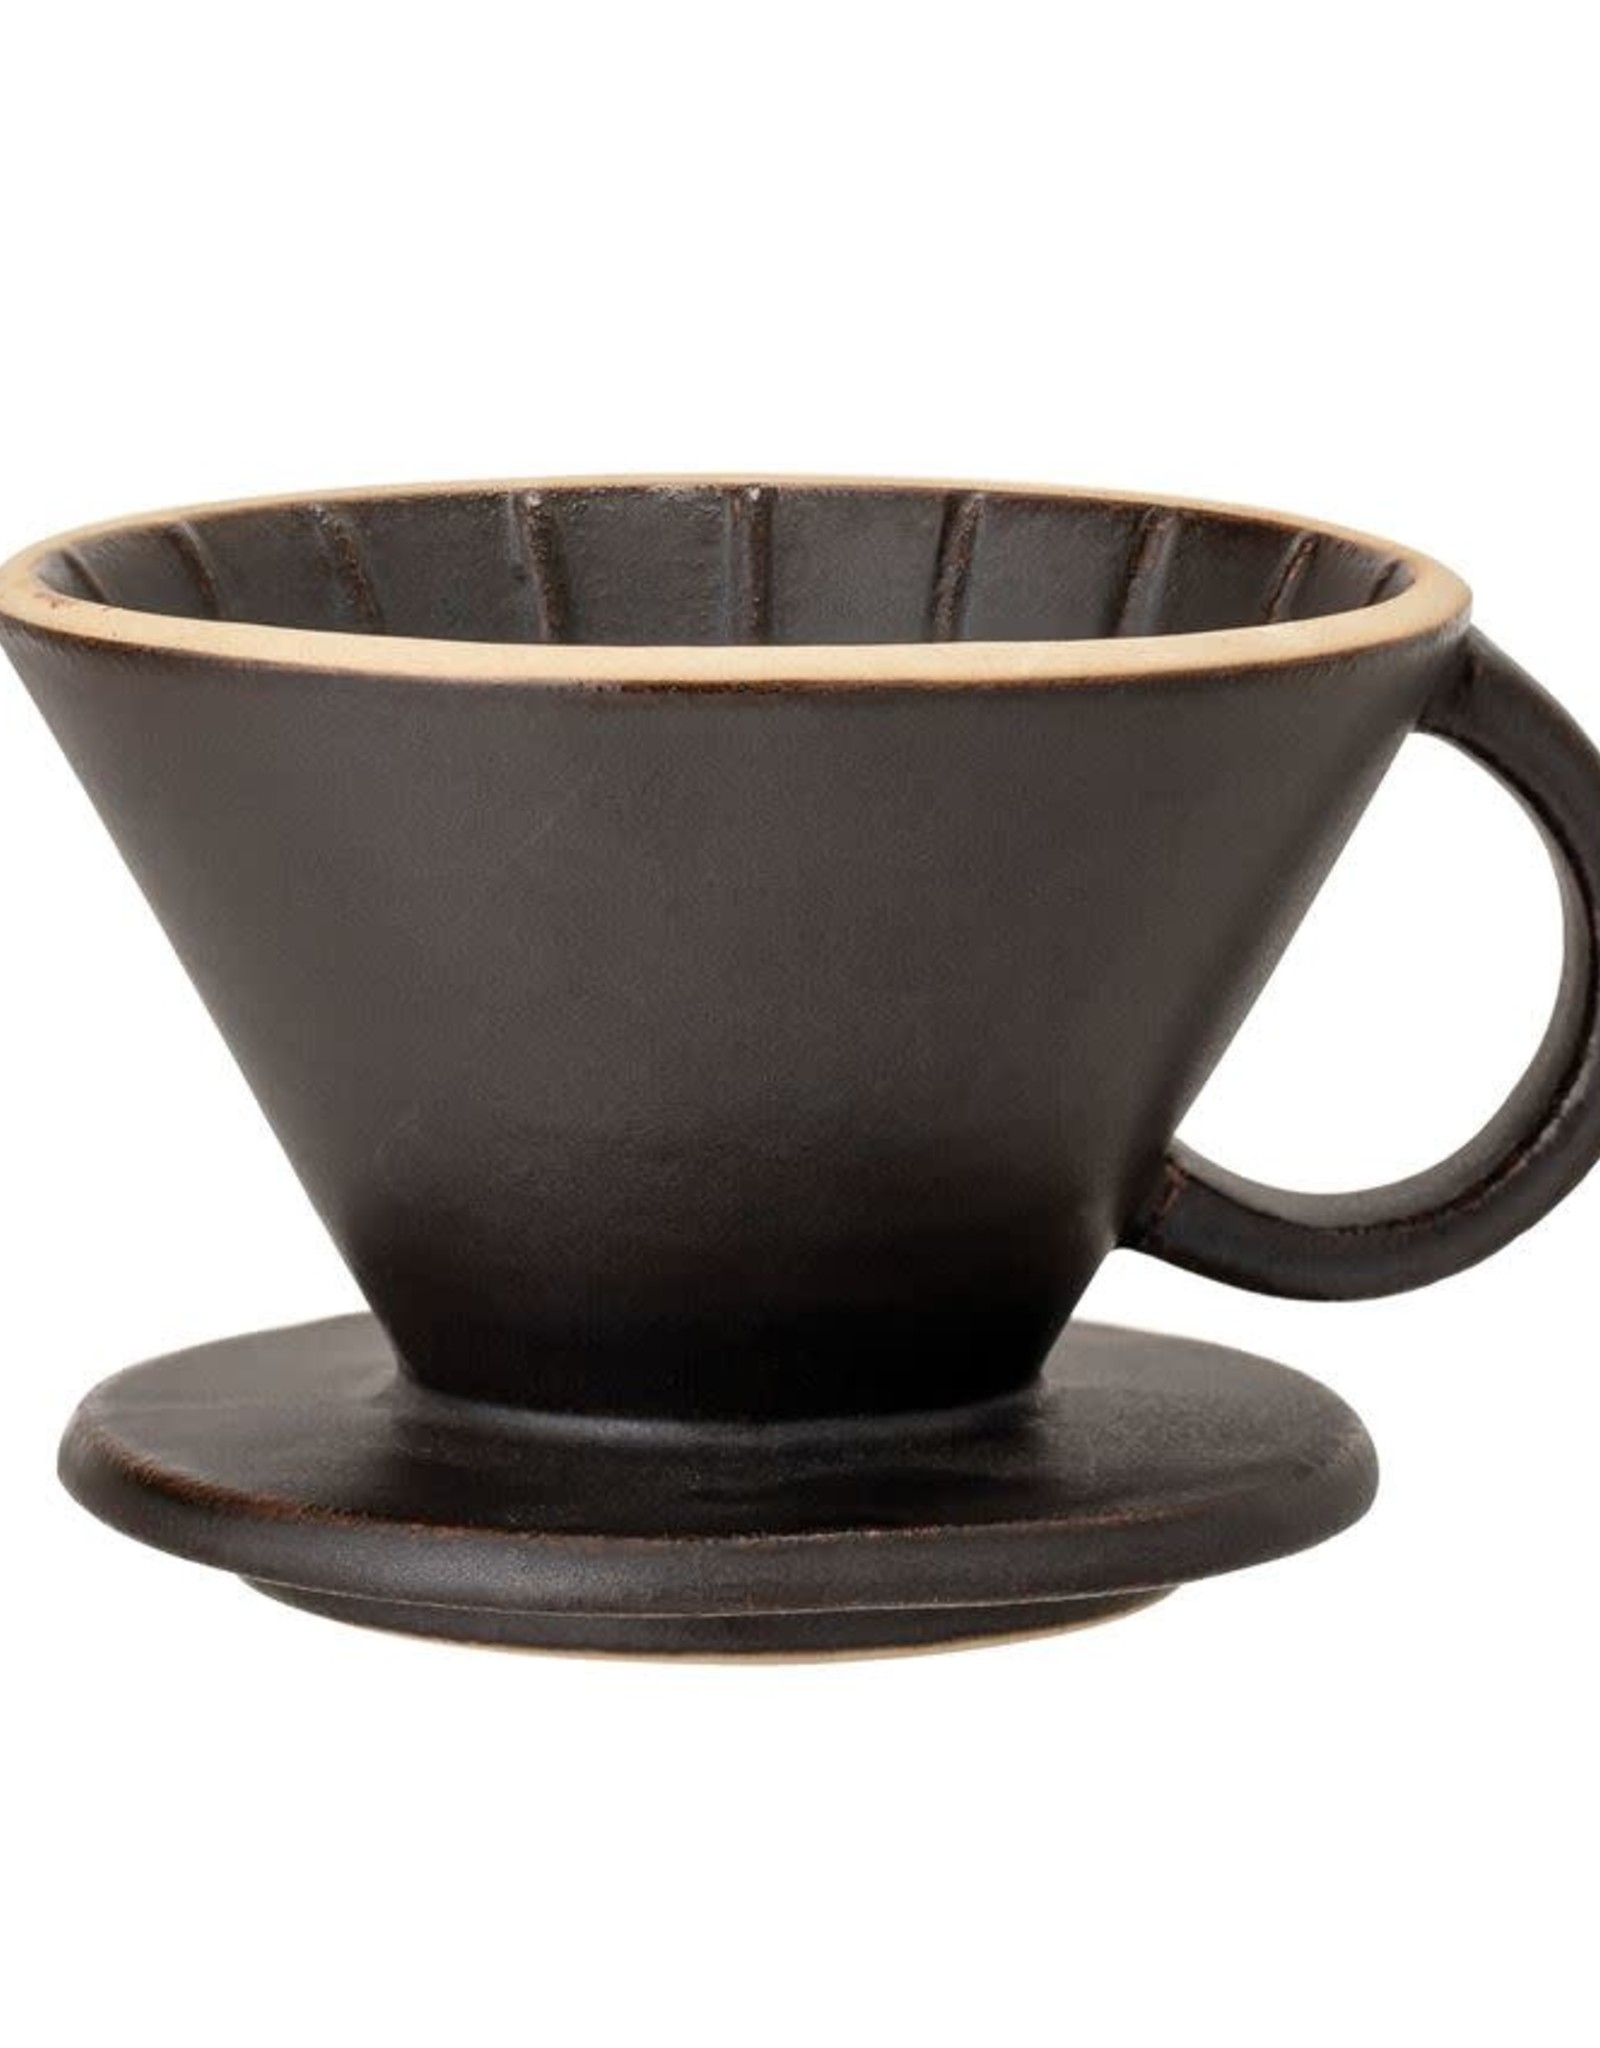 Black Matte Pour Over Coffee Drip